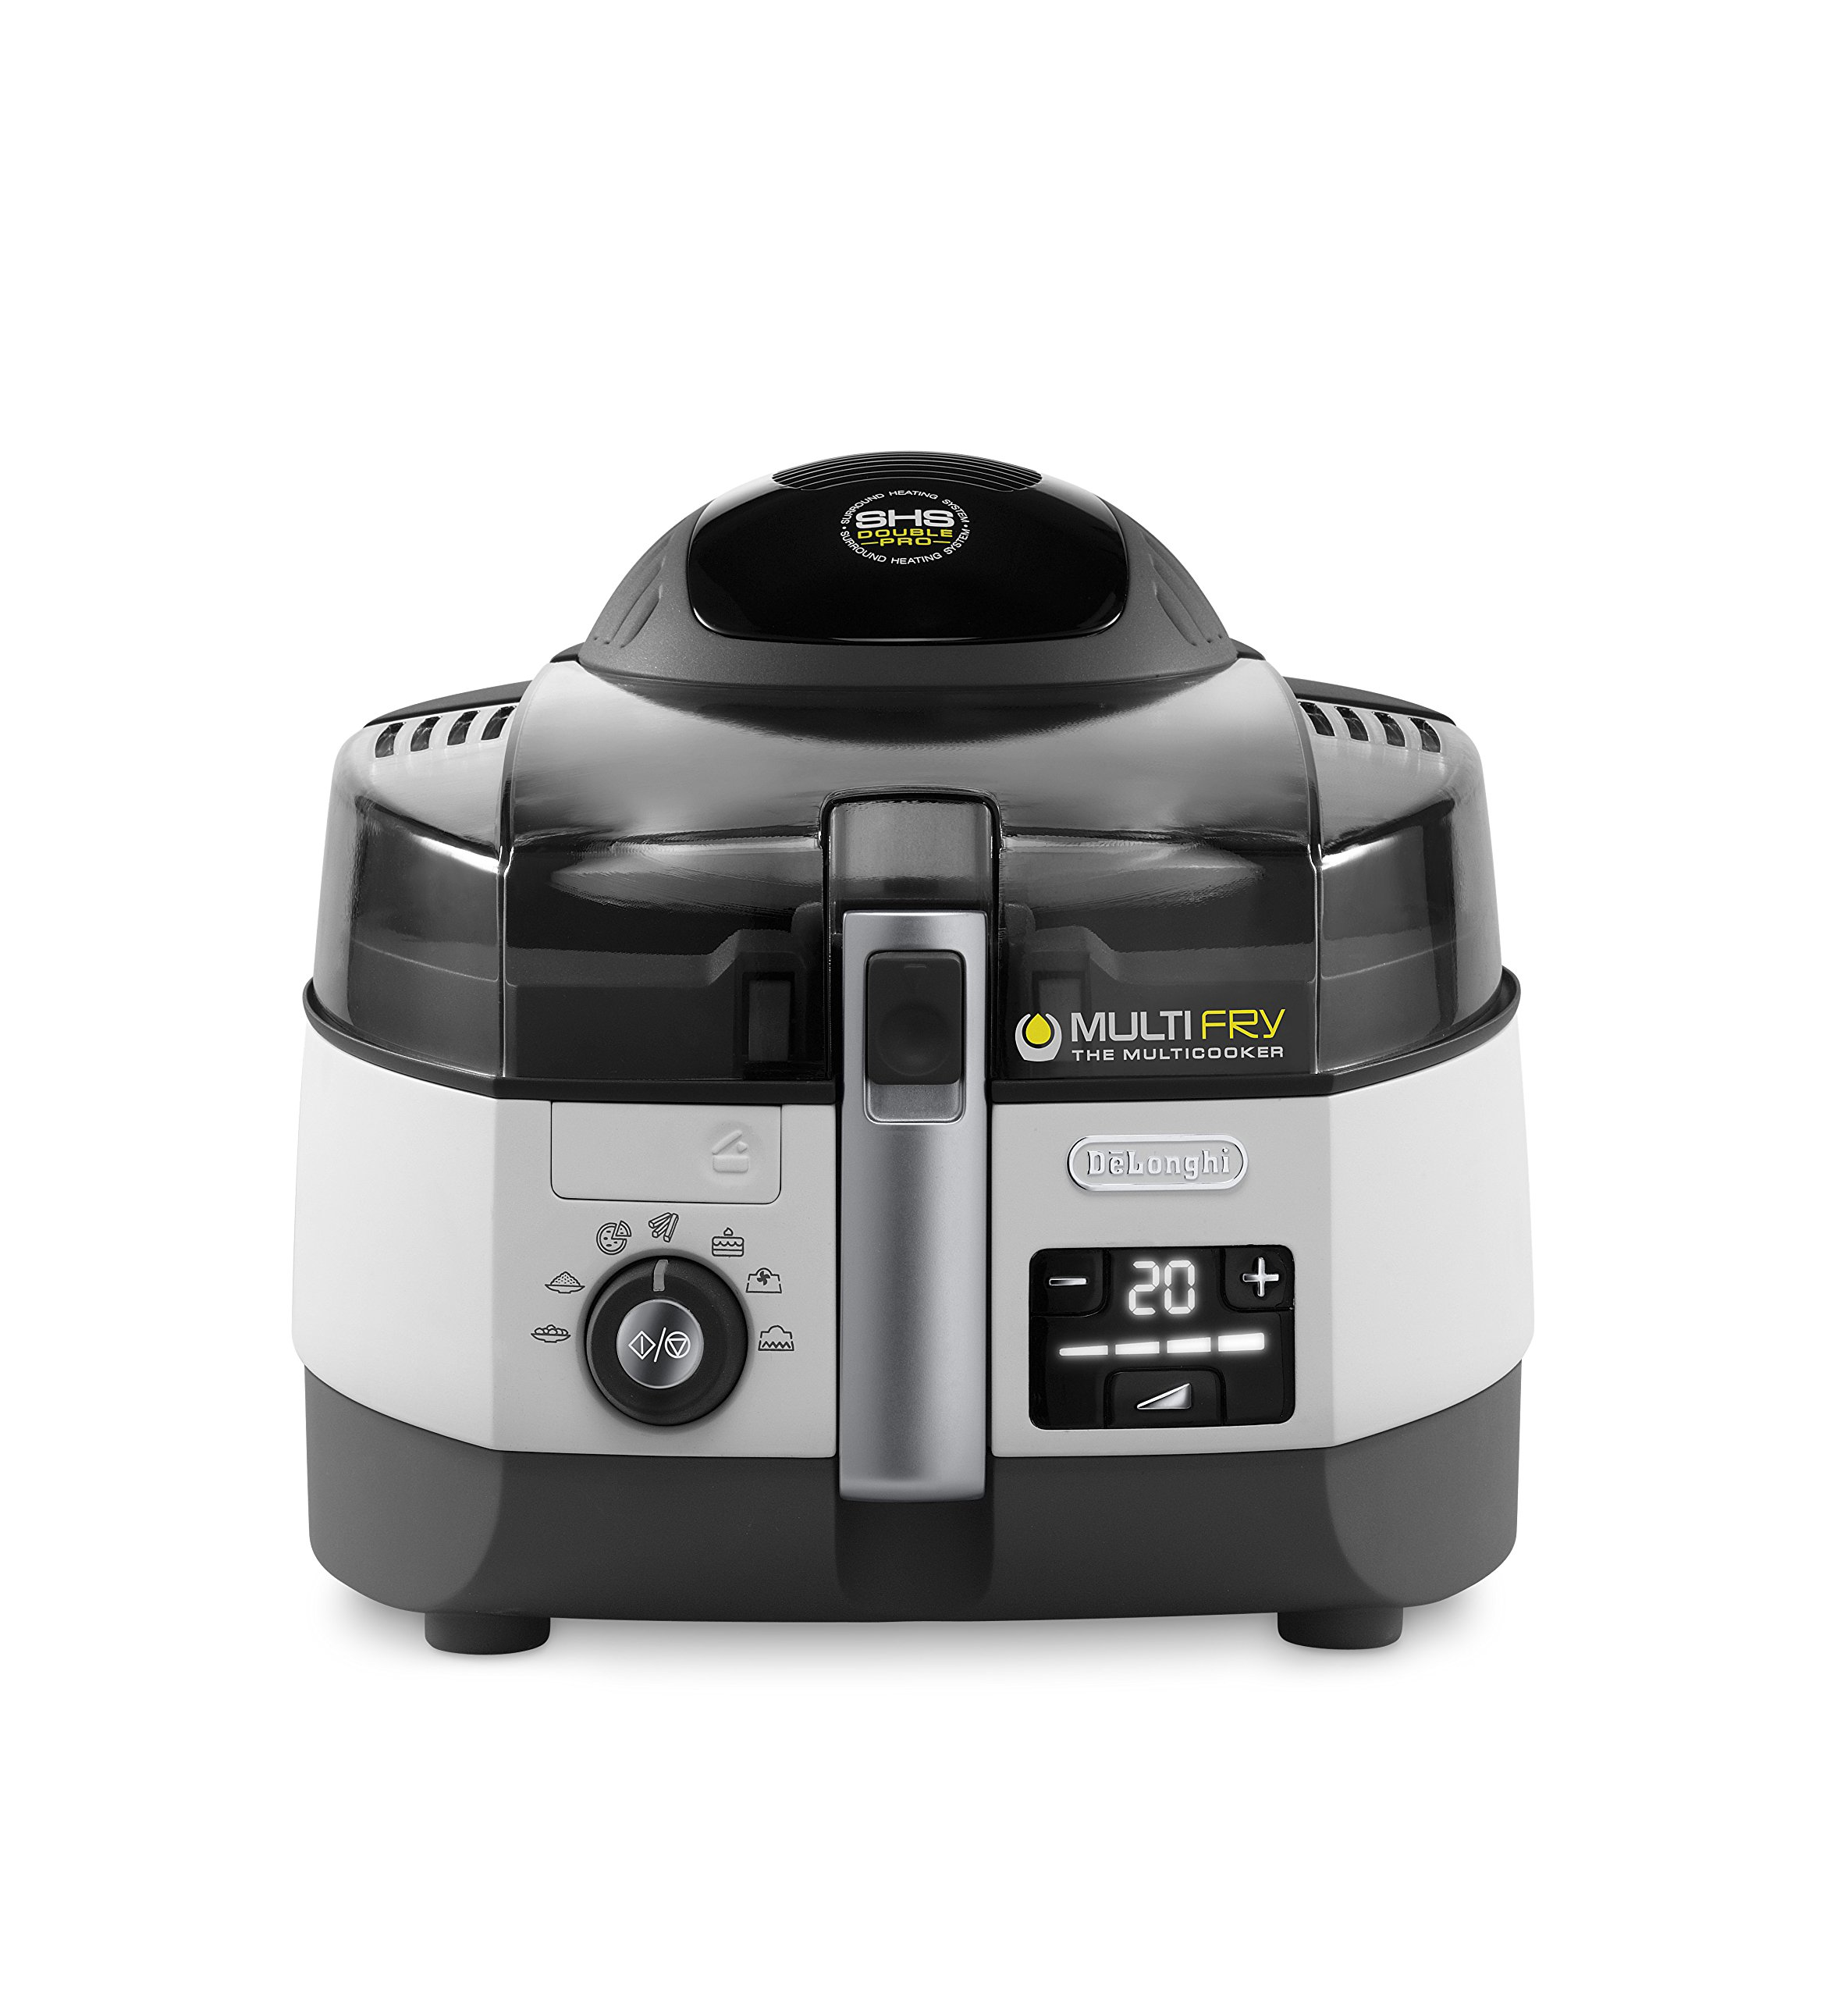 DeLonghi Multifry The Multicooker FH1394 - Robot de cocina, color ...